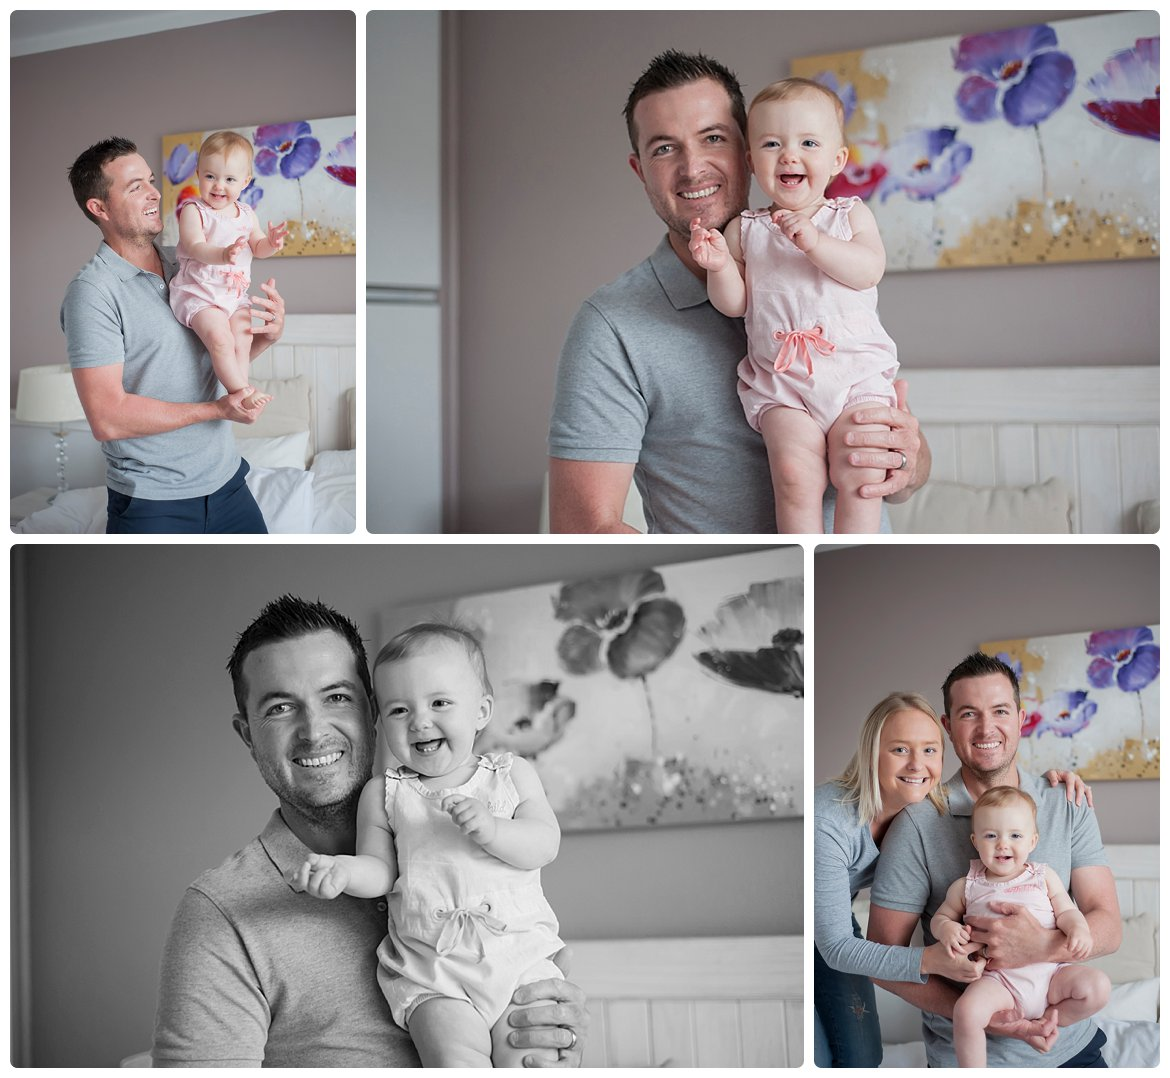 Cape_town_family_photographer_joanne_markland_photography_grace-020